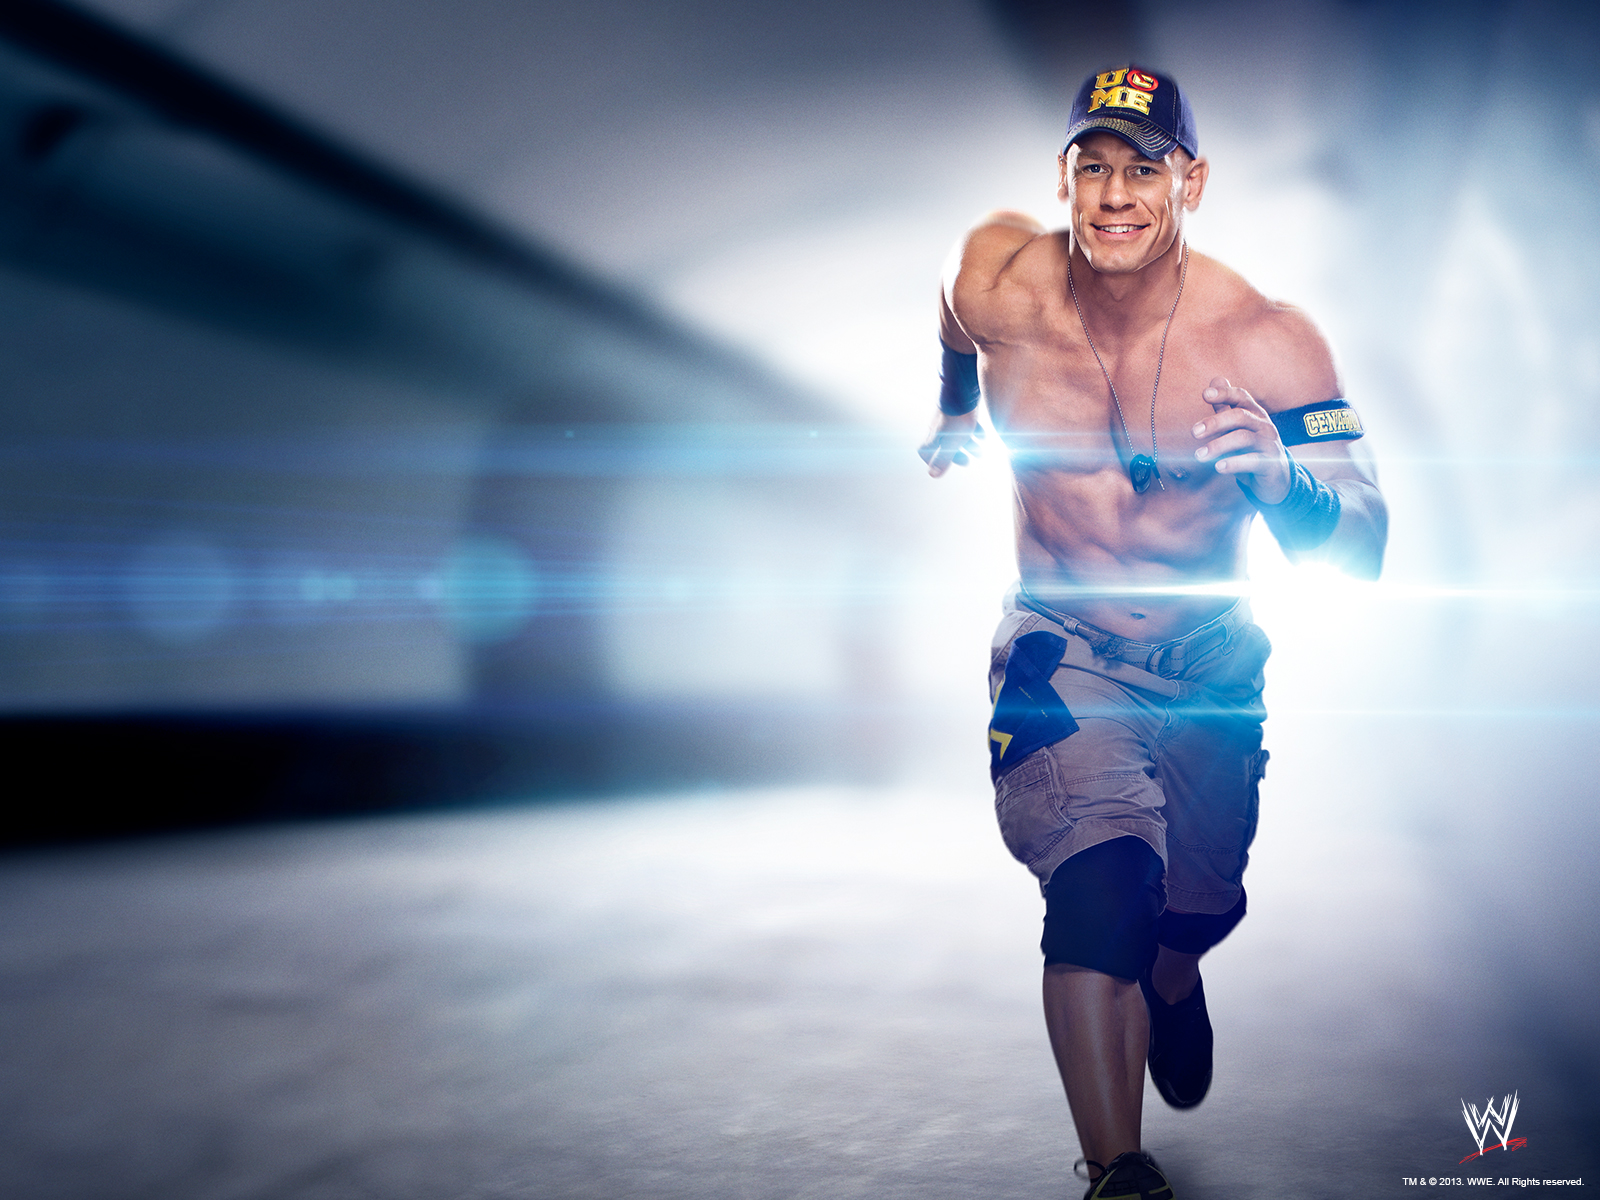 wwe images john cena fond d'écran hd fond d'écran and background